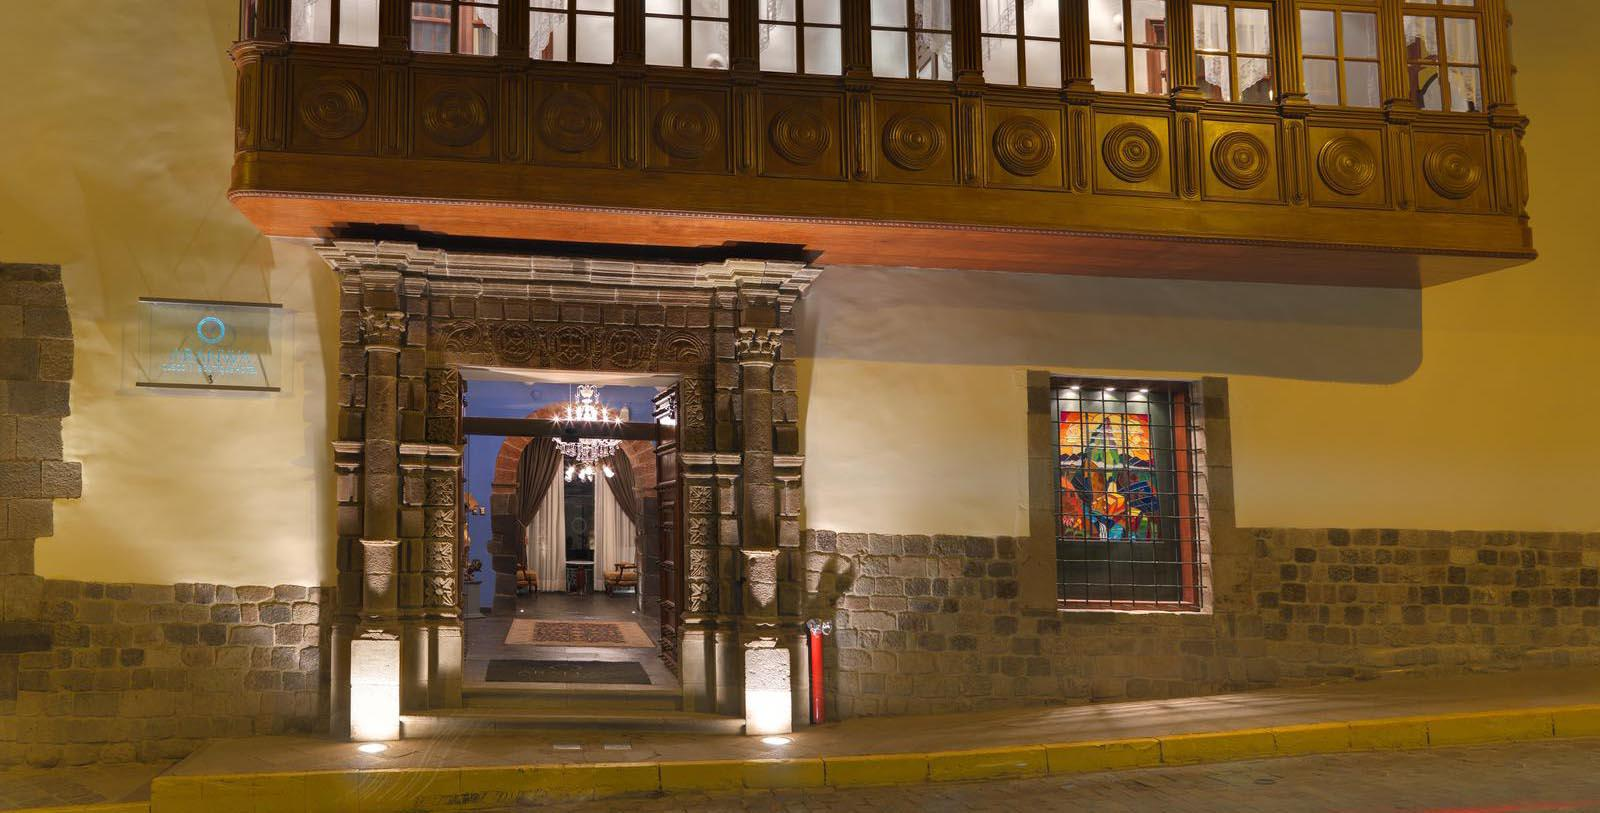 Image of hotel exterior front entrance Aranwa Cusco Boutique Hotel, 1560, Member of Historic Hotels Worldwide, in Cusco, Peru, Overview